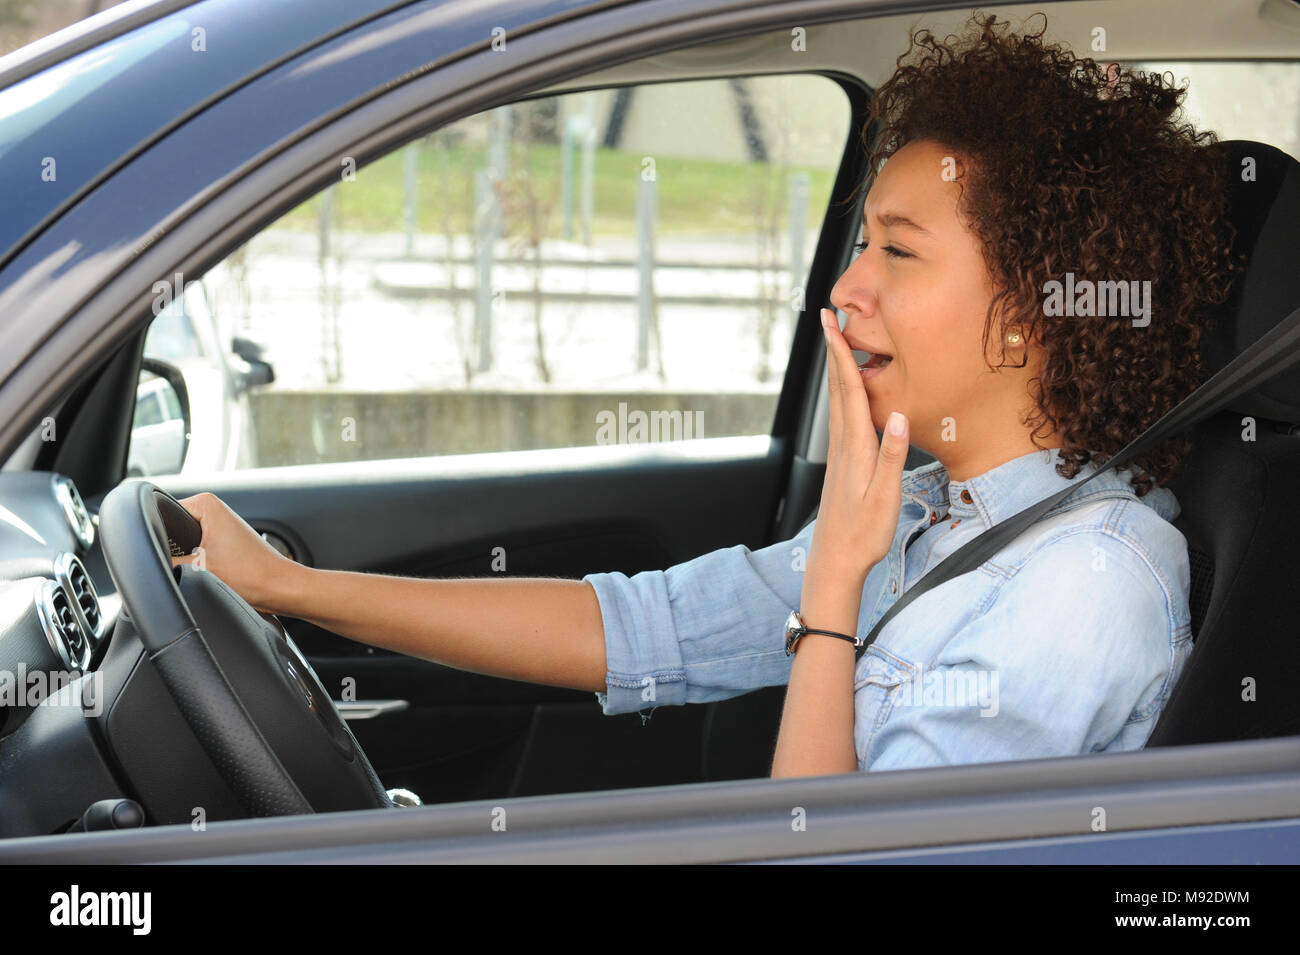 Driving when tired or sleepy